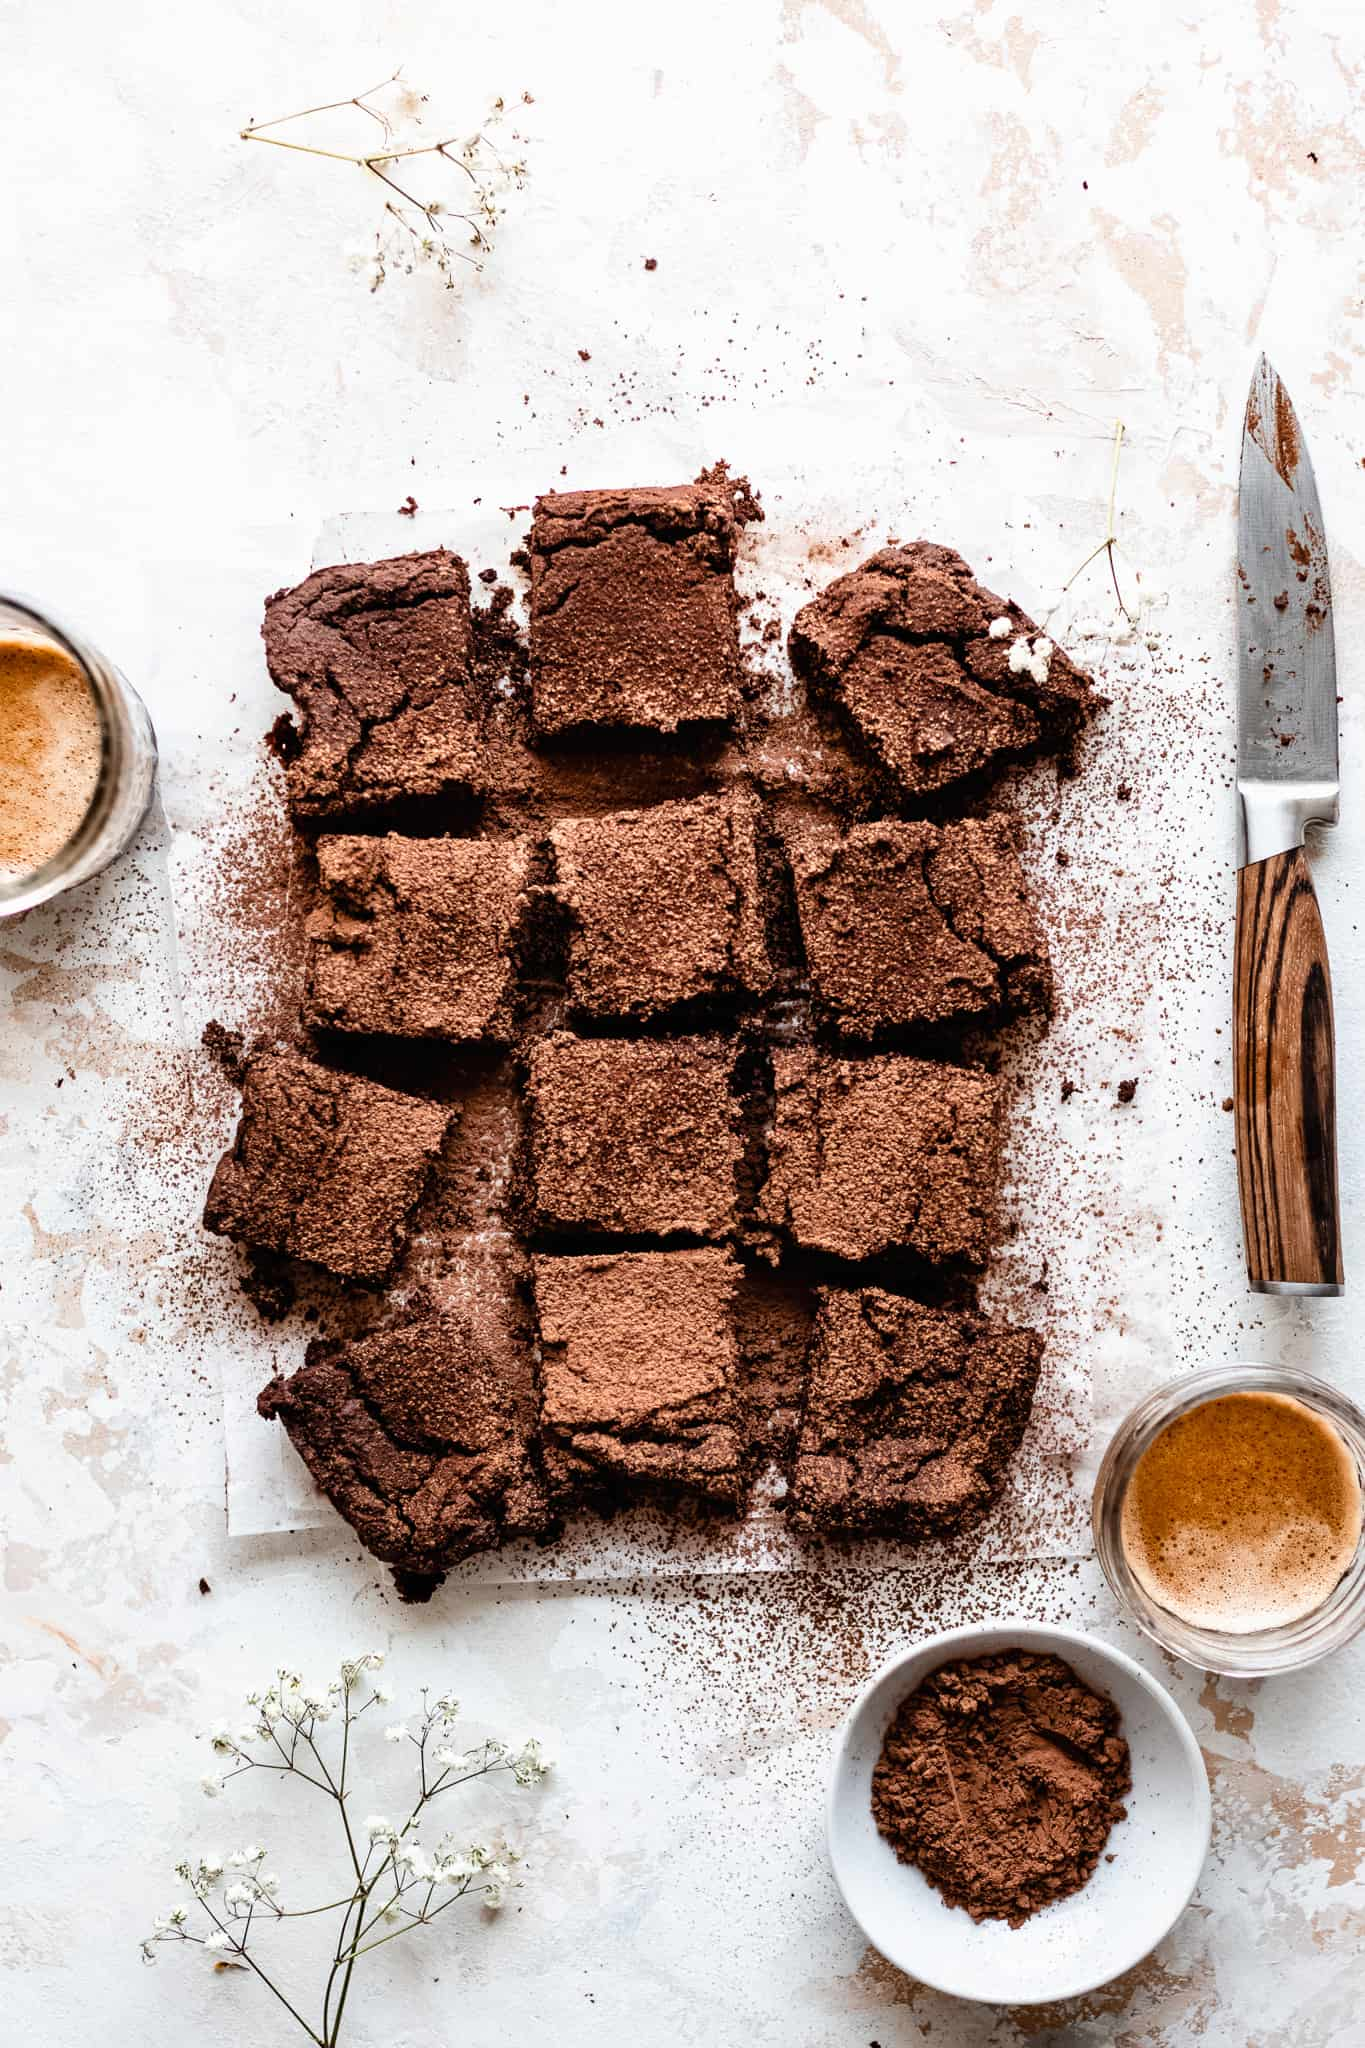 chickpea recipes - chickpea brownies